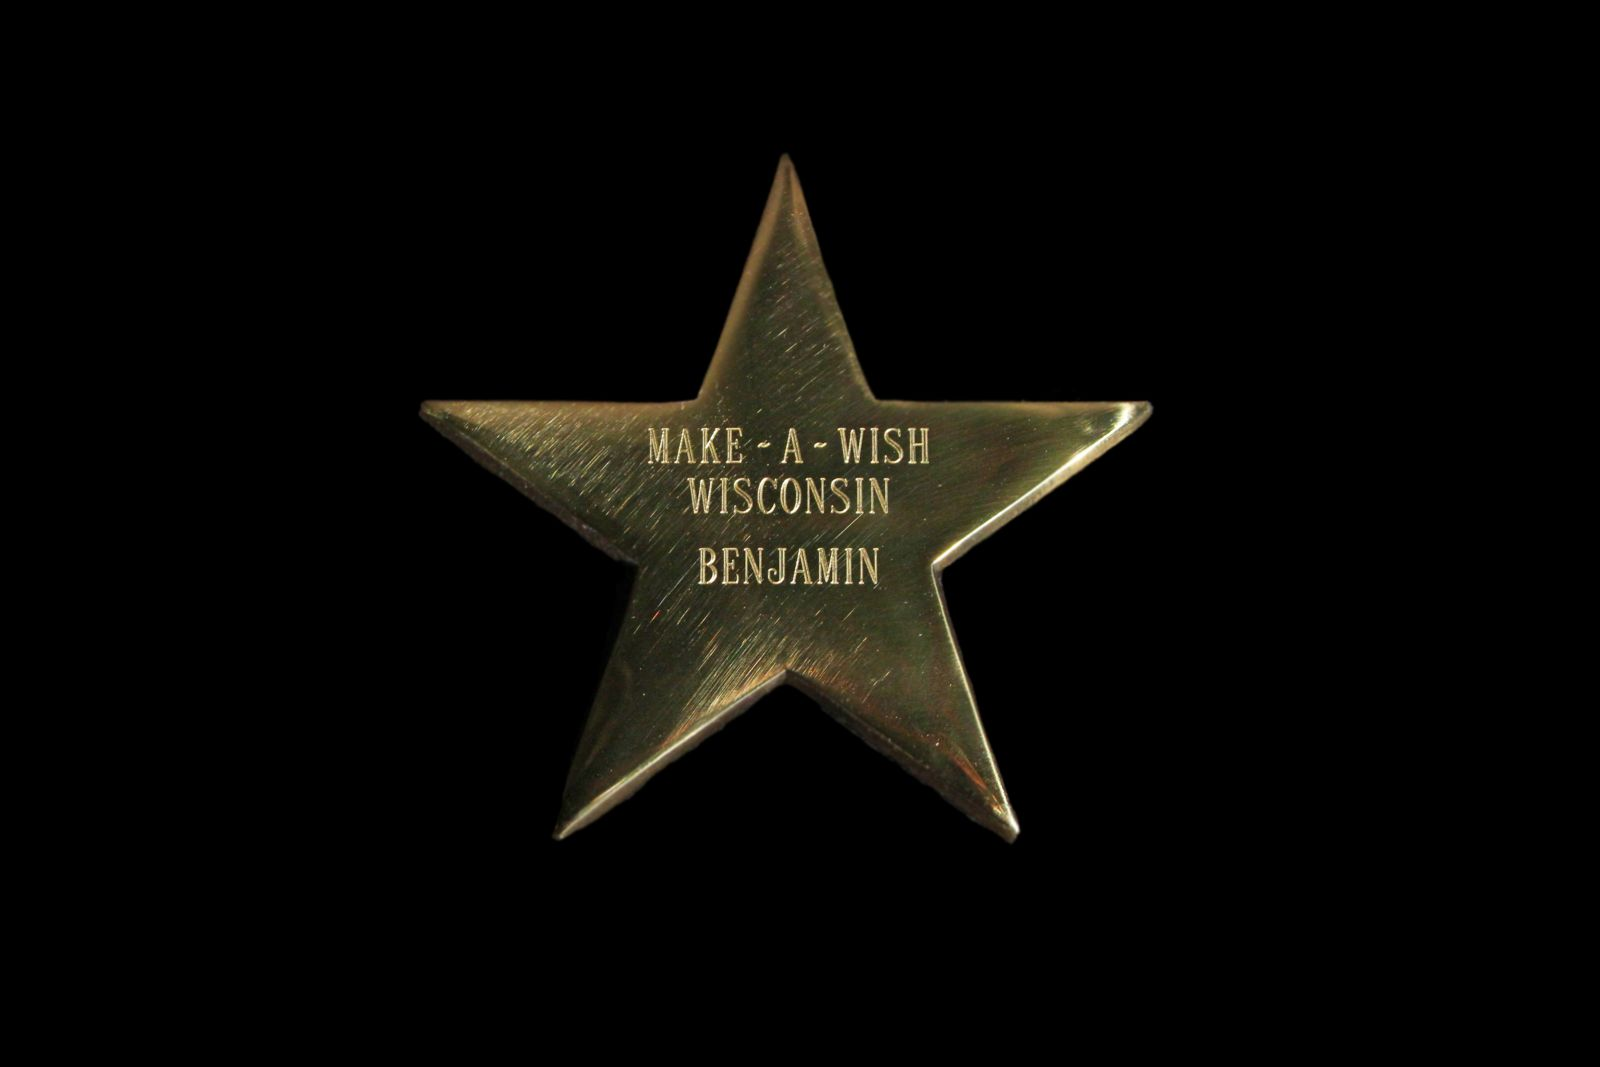 Make A Wish Wisconsin Star for Benjamin